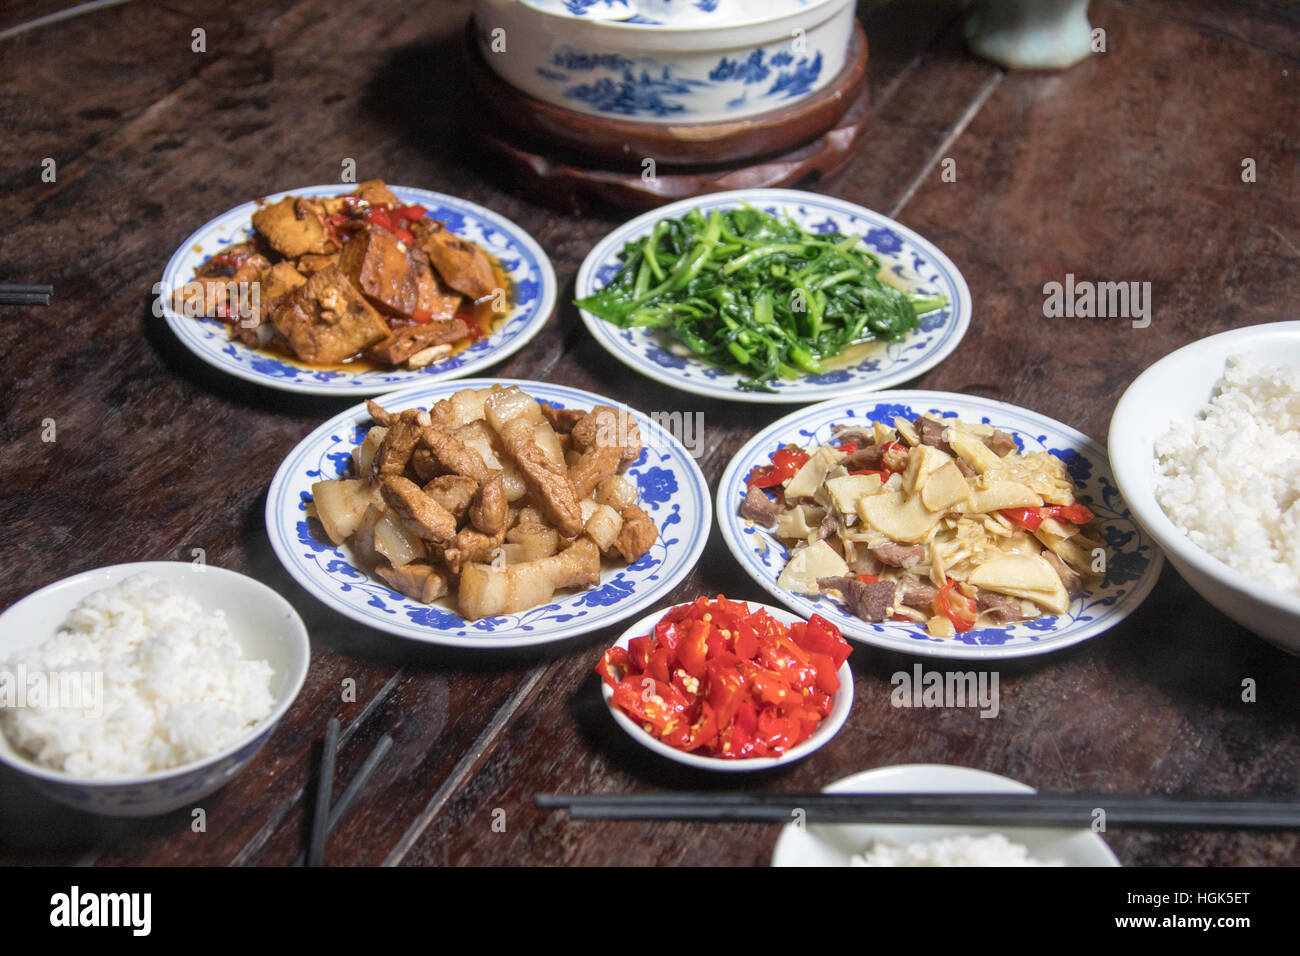 La cuisine locale, Xidi, Chine Photo Stock